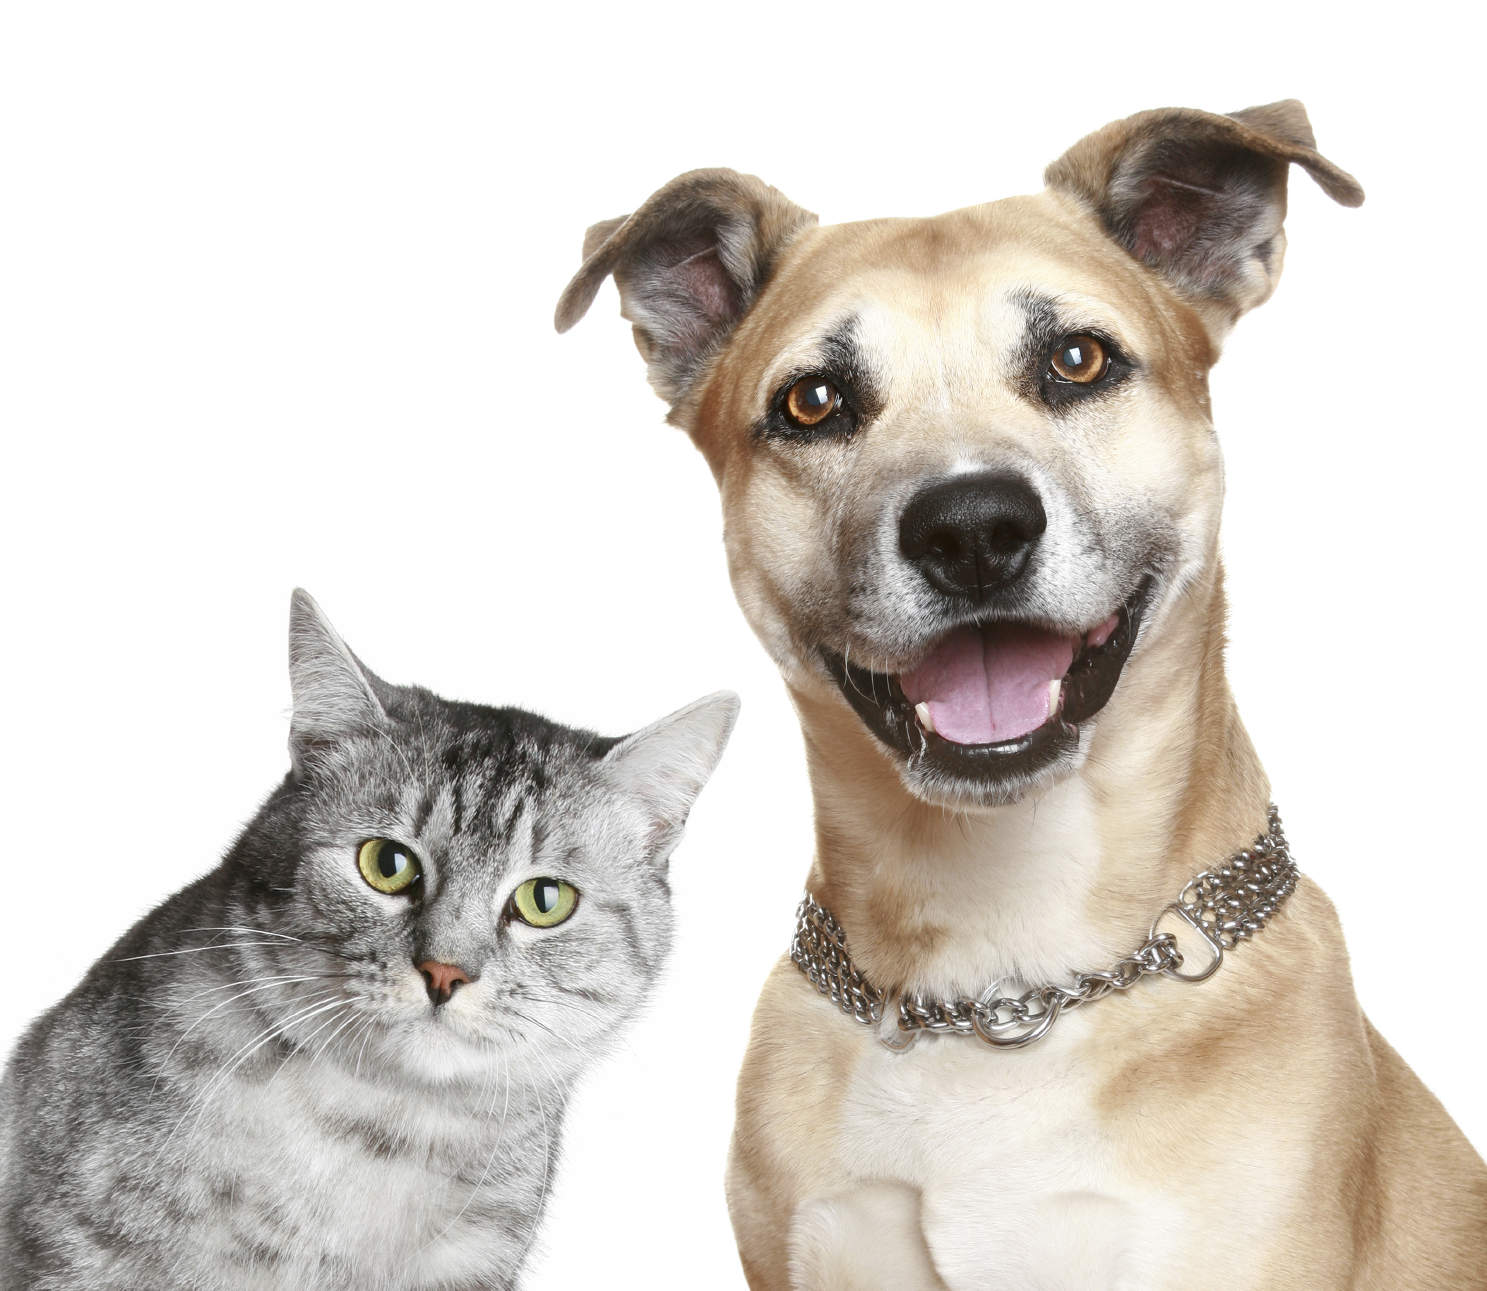 Cat & Dog for Christmas: Ban pet consumption in Switzerland